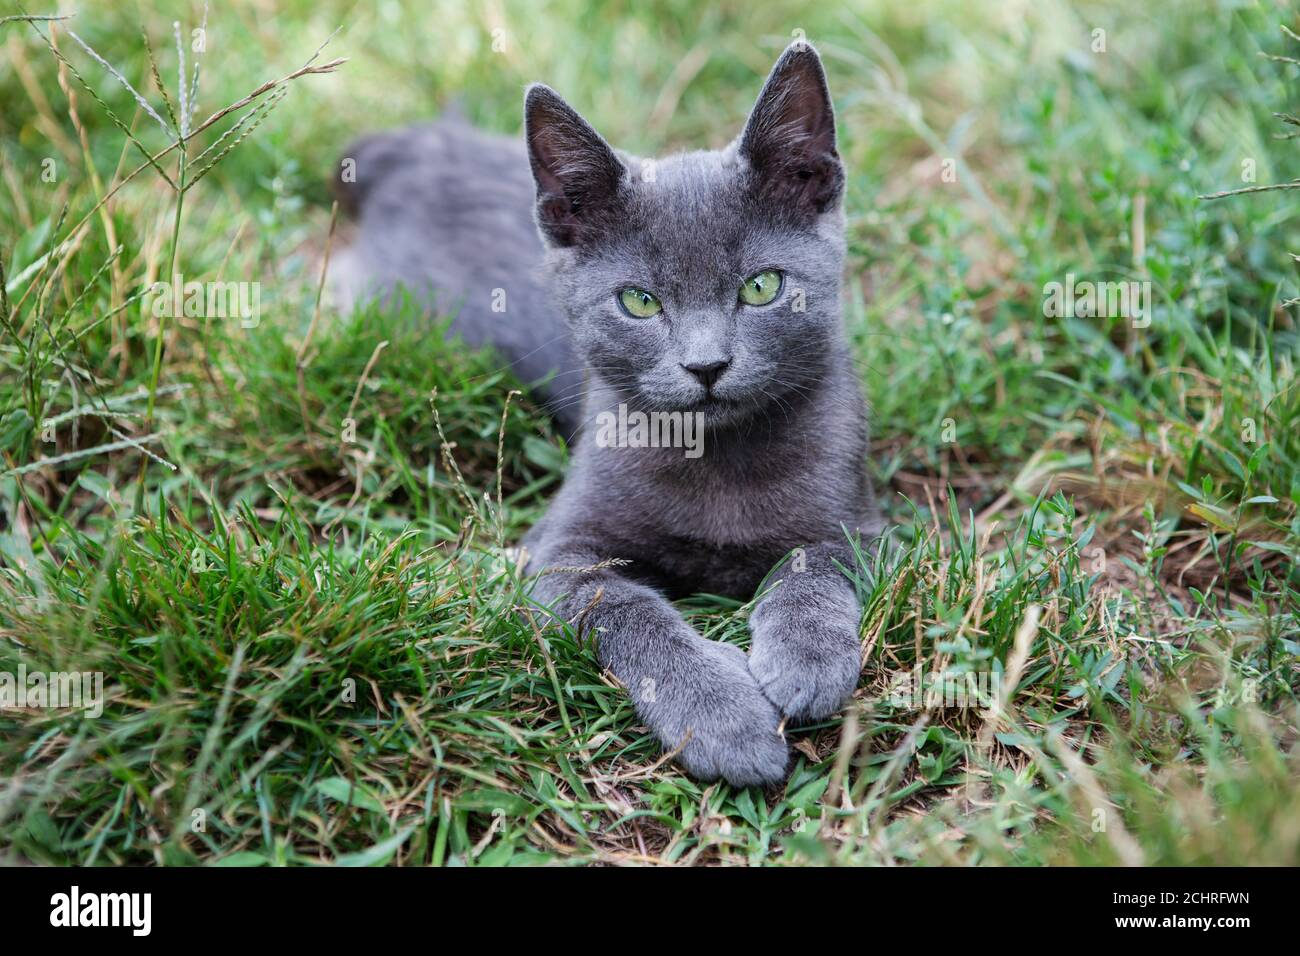 Russian blue cat. A small gray green-eyed pedigree kitten sits on the green grass. Stock Photo